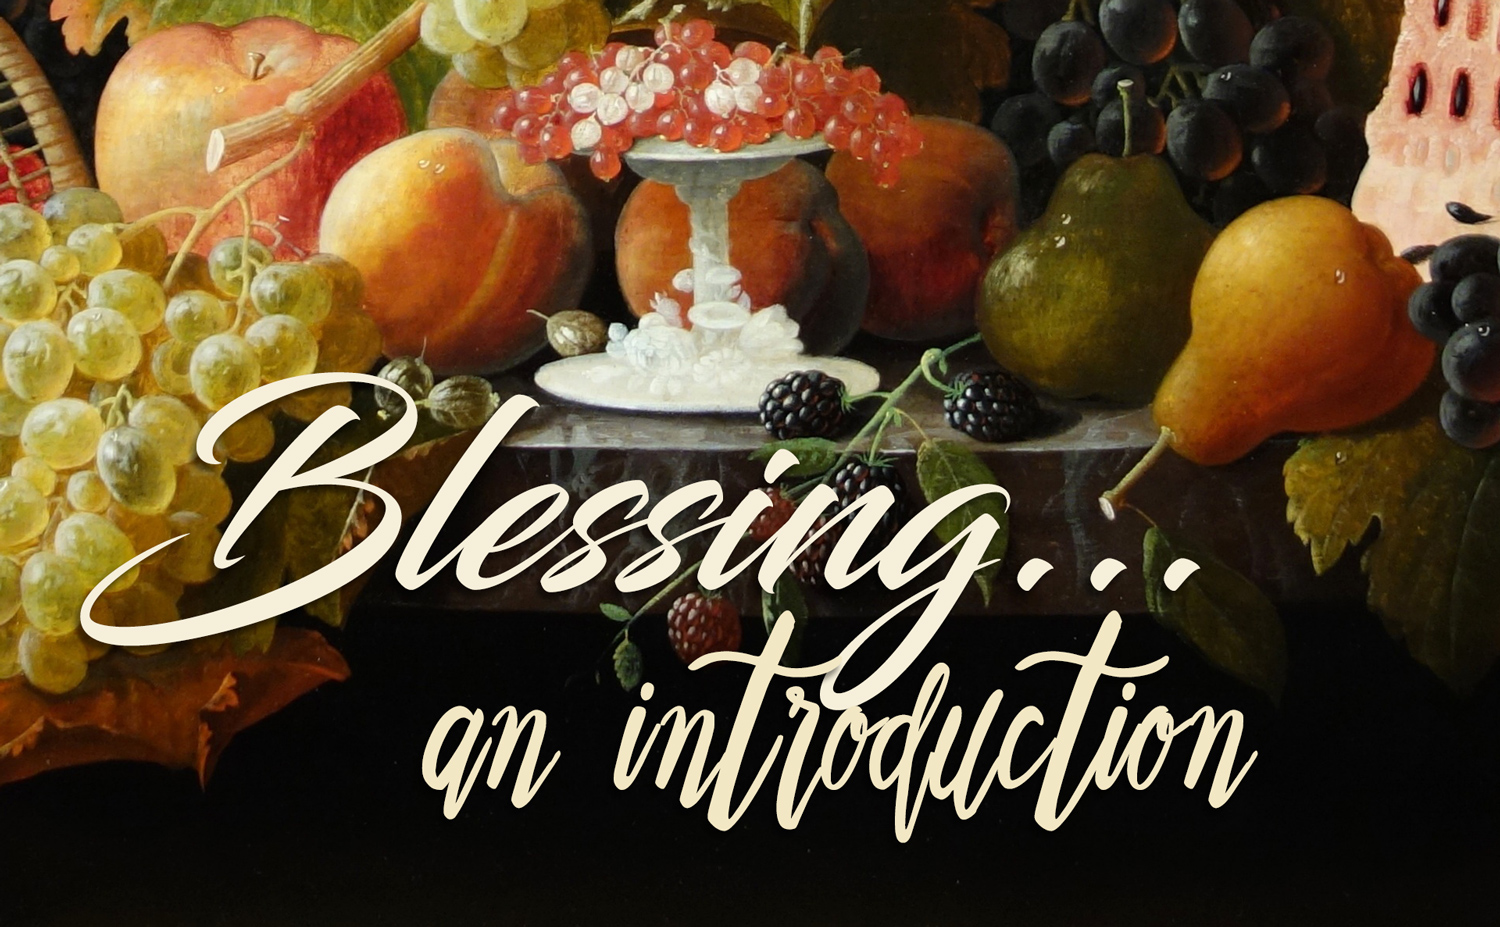 BlessingIntroduction.jpg